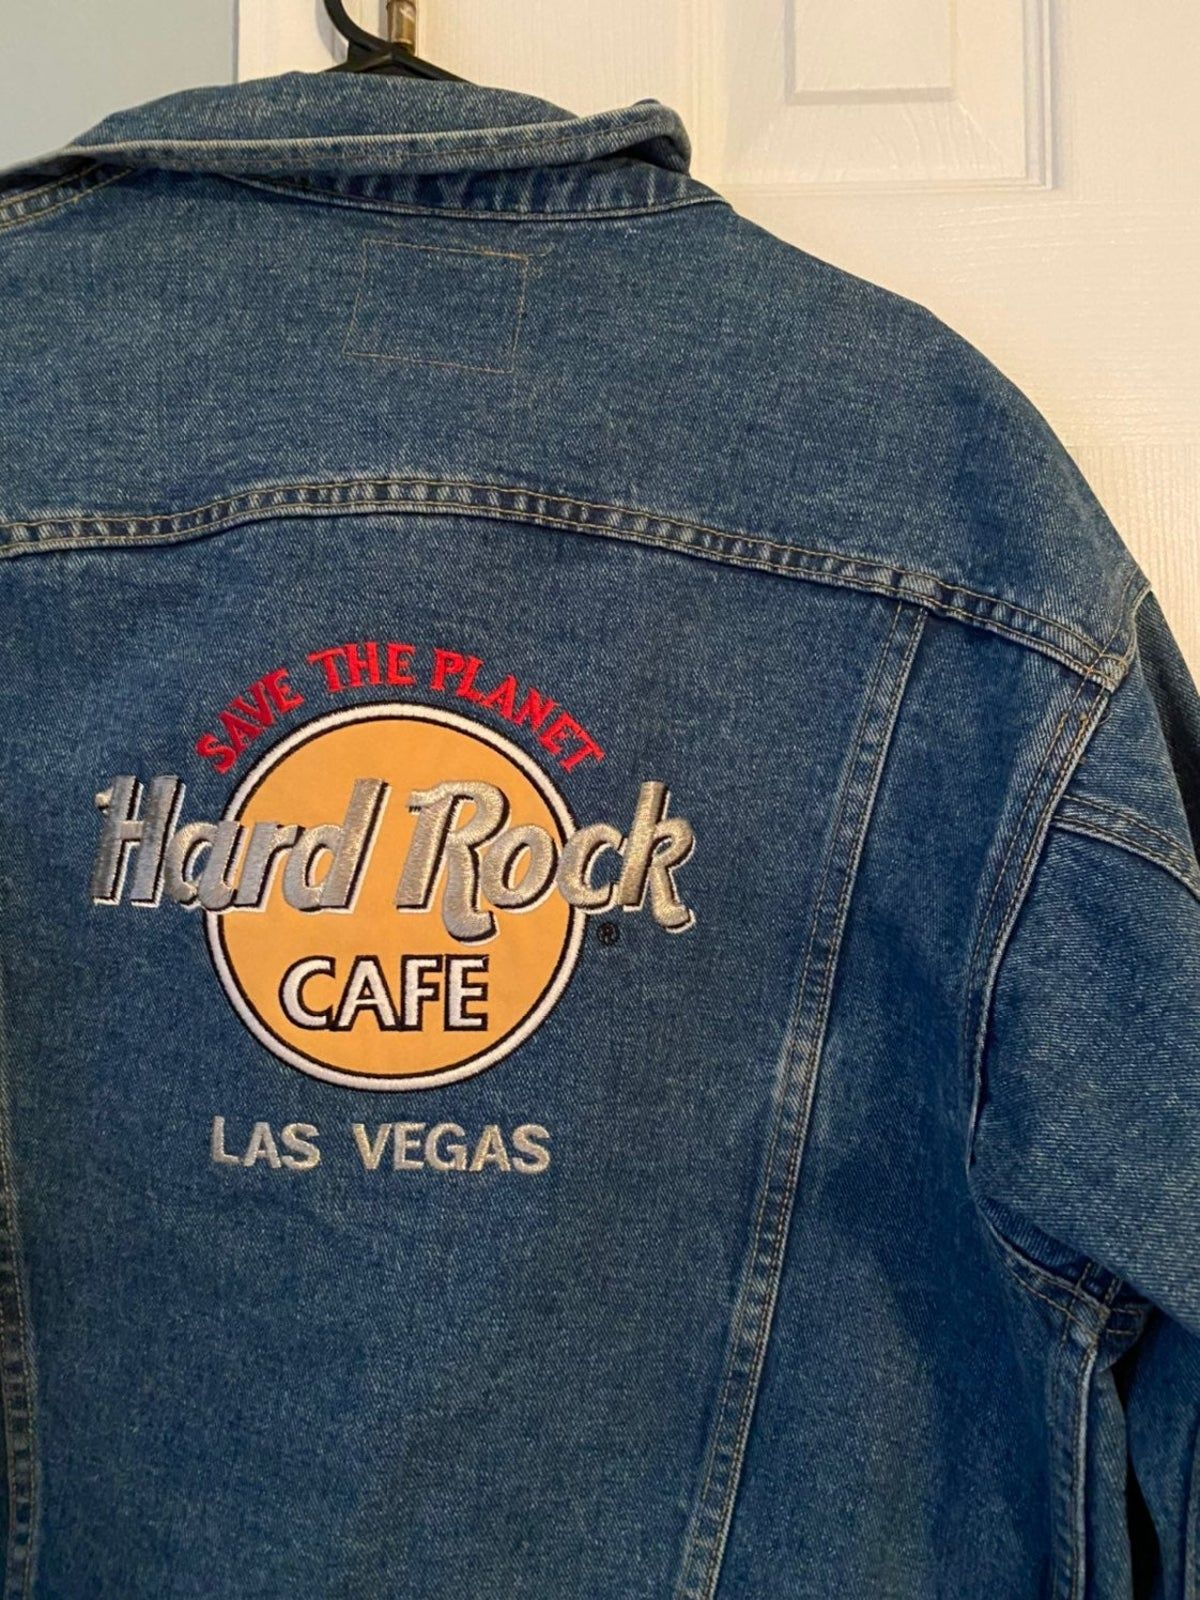 Pin By Annabelleglisson On Hard Rock Cafe Hard Rock Cafe Cafe Jacket Hard Rock [ 1600 x 1200 Pixel ]